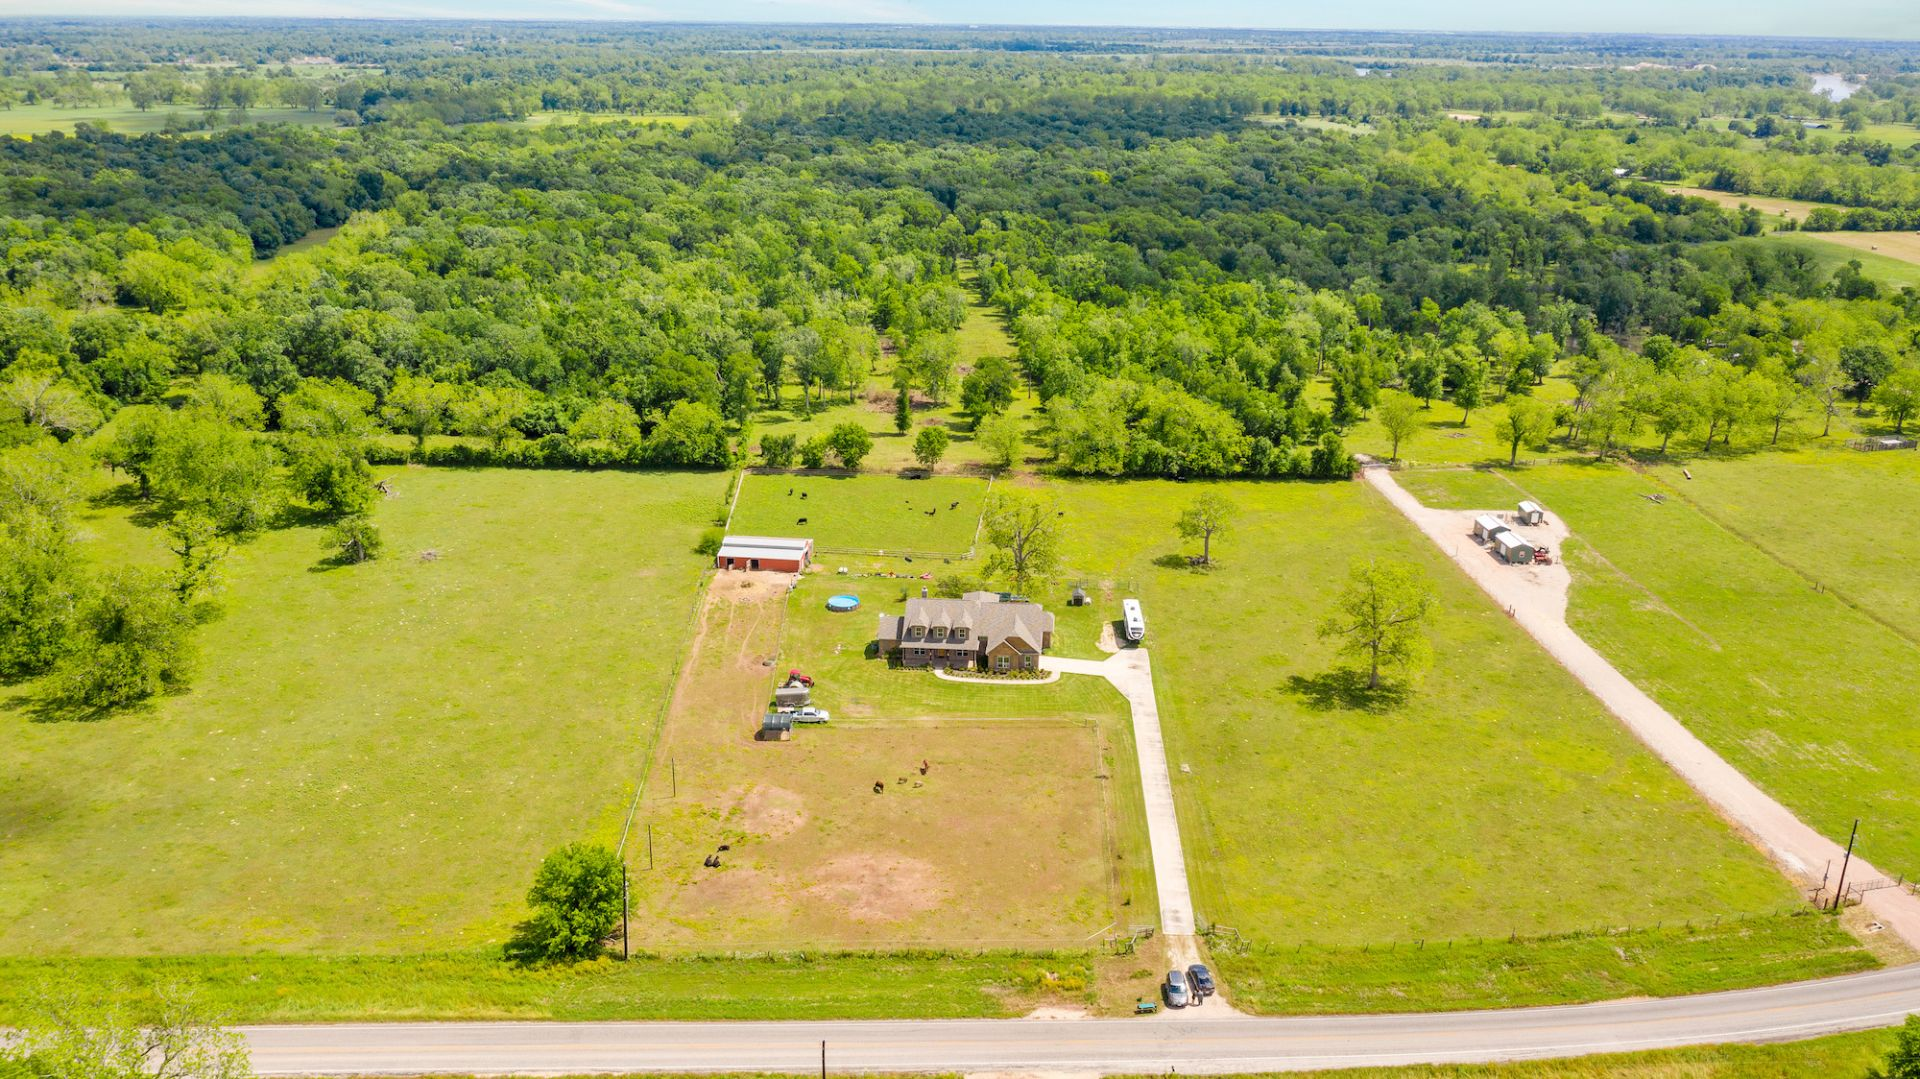 Lot 8 - Custom Country Home with Acreage in Sealy